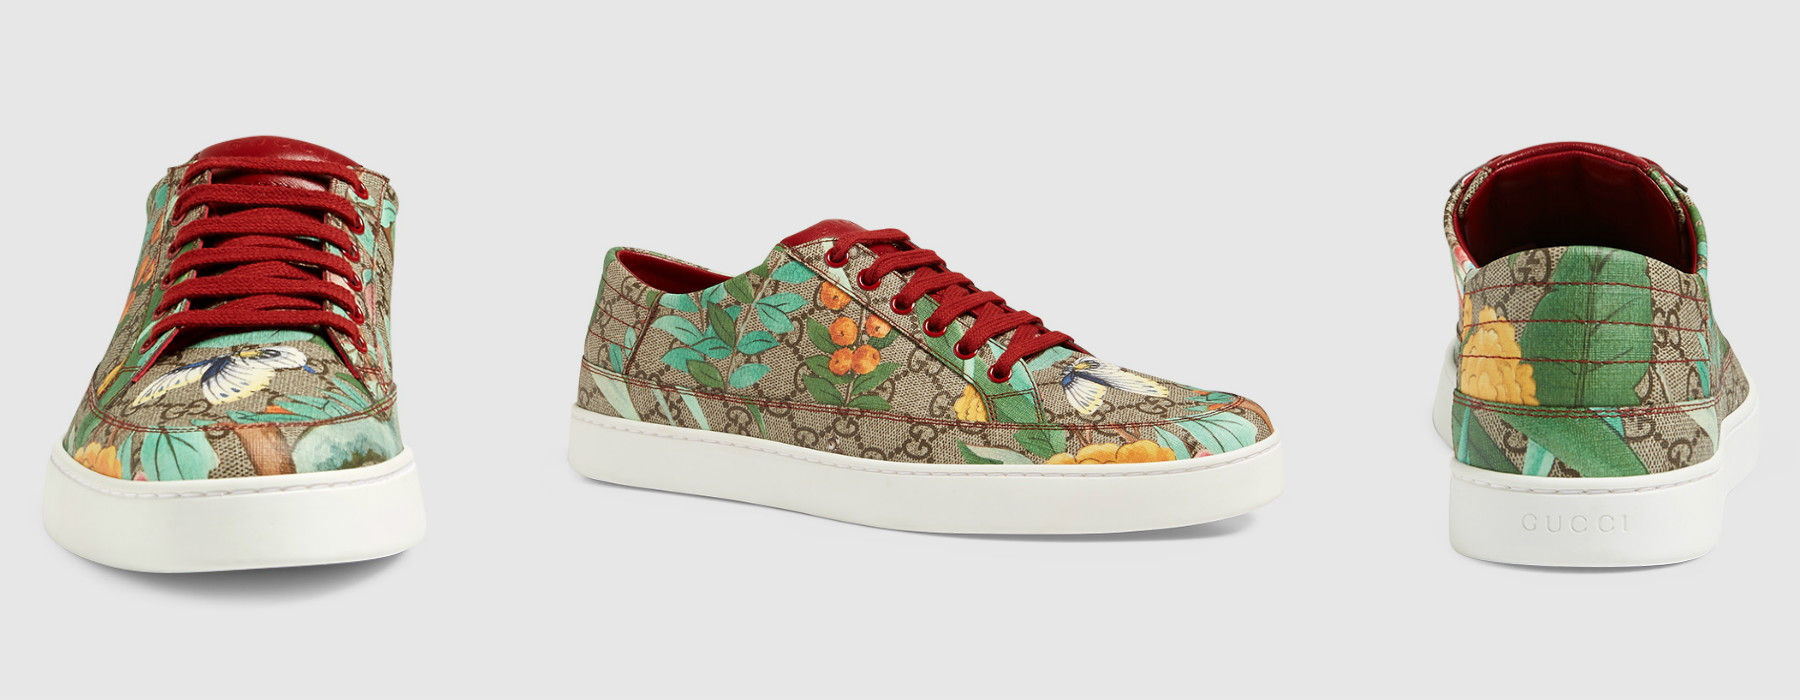 18th century Tian print shoes by Gucci